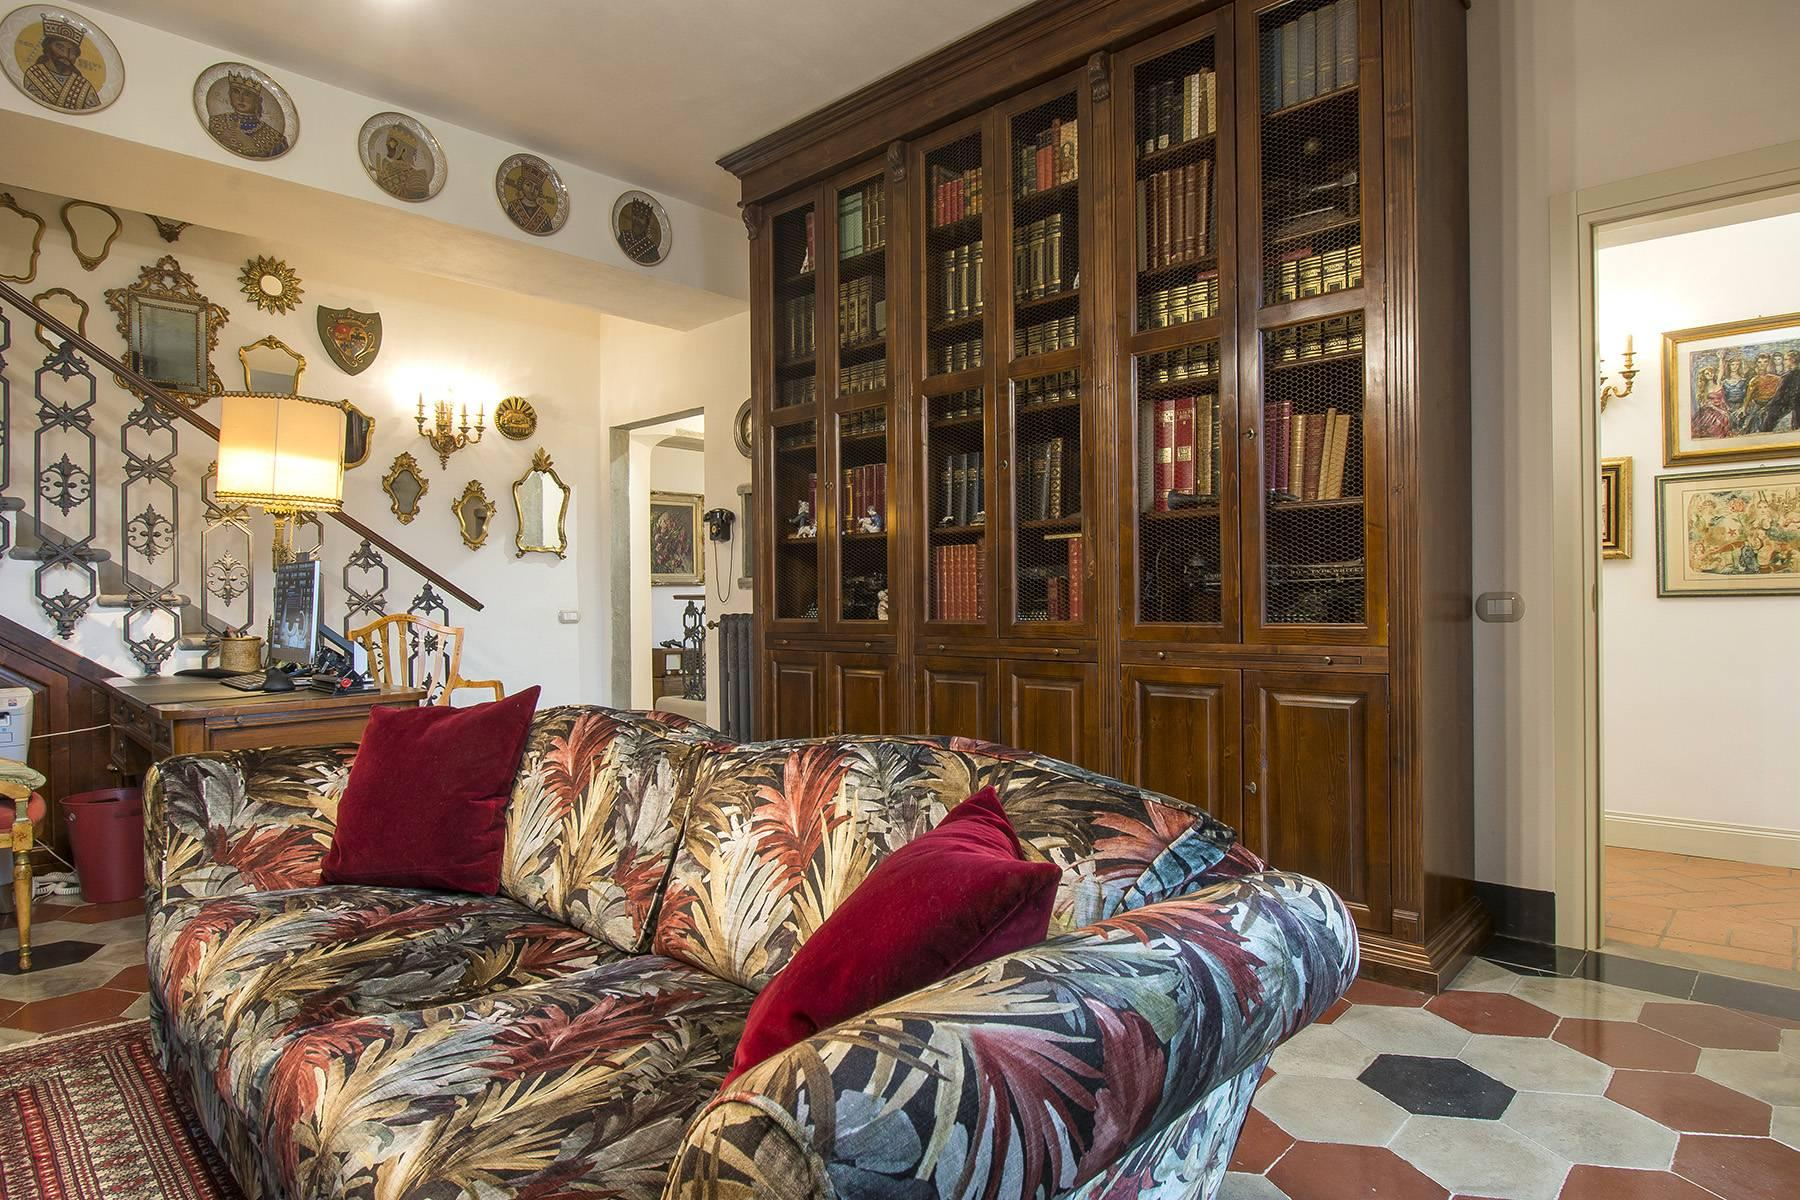 Exquisite apartment within a historic villa - 3